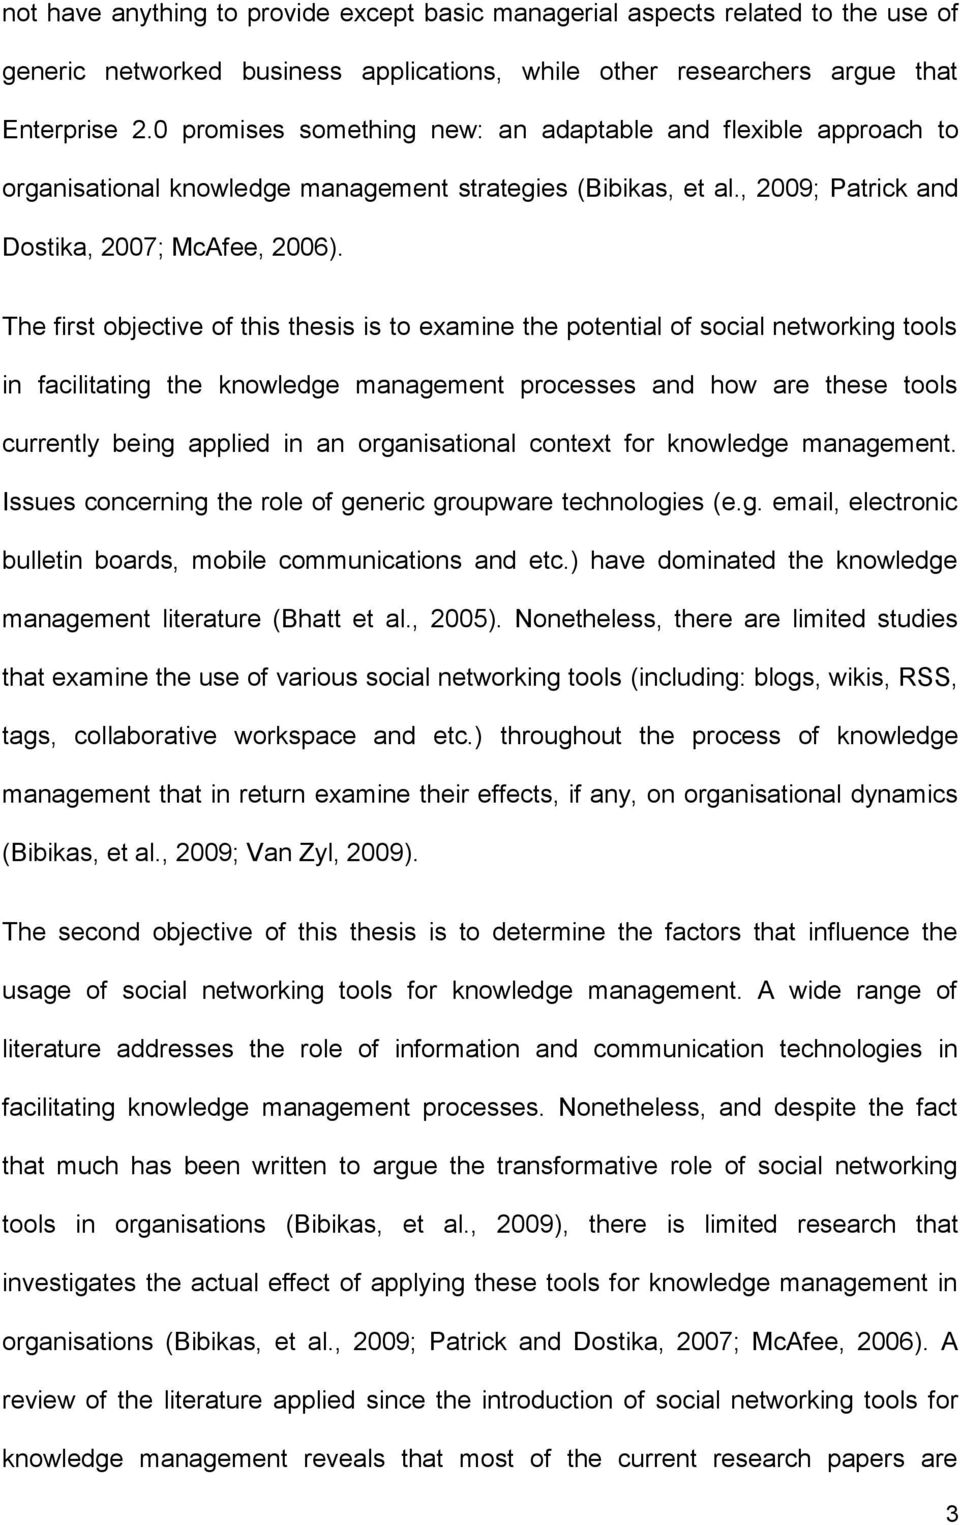 The first objective of this thesis is to examine the potential of social networking tools in facilitating the knowledge management processes and how are these tools currently being applied in an